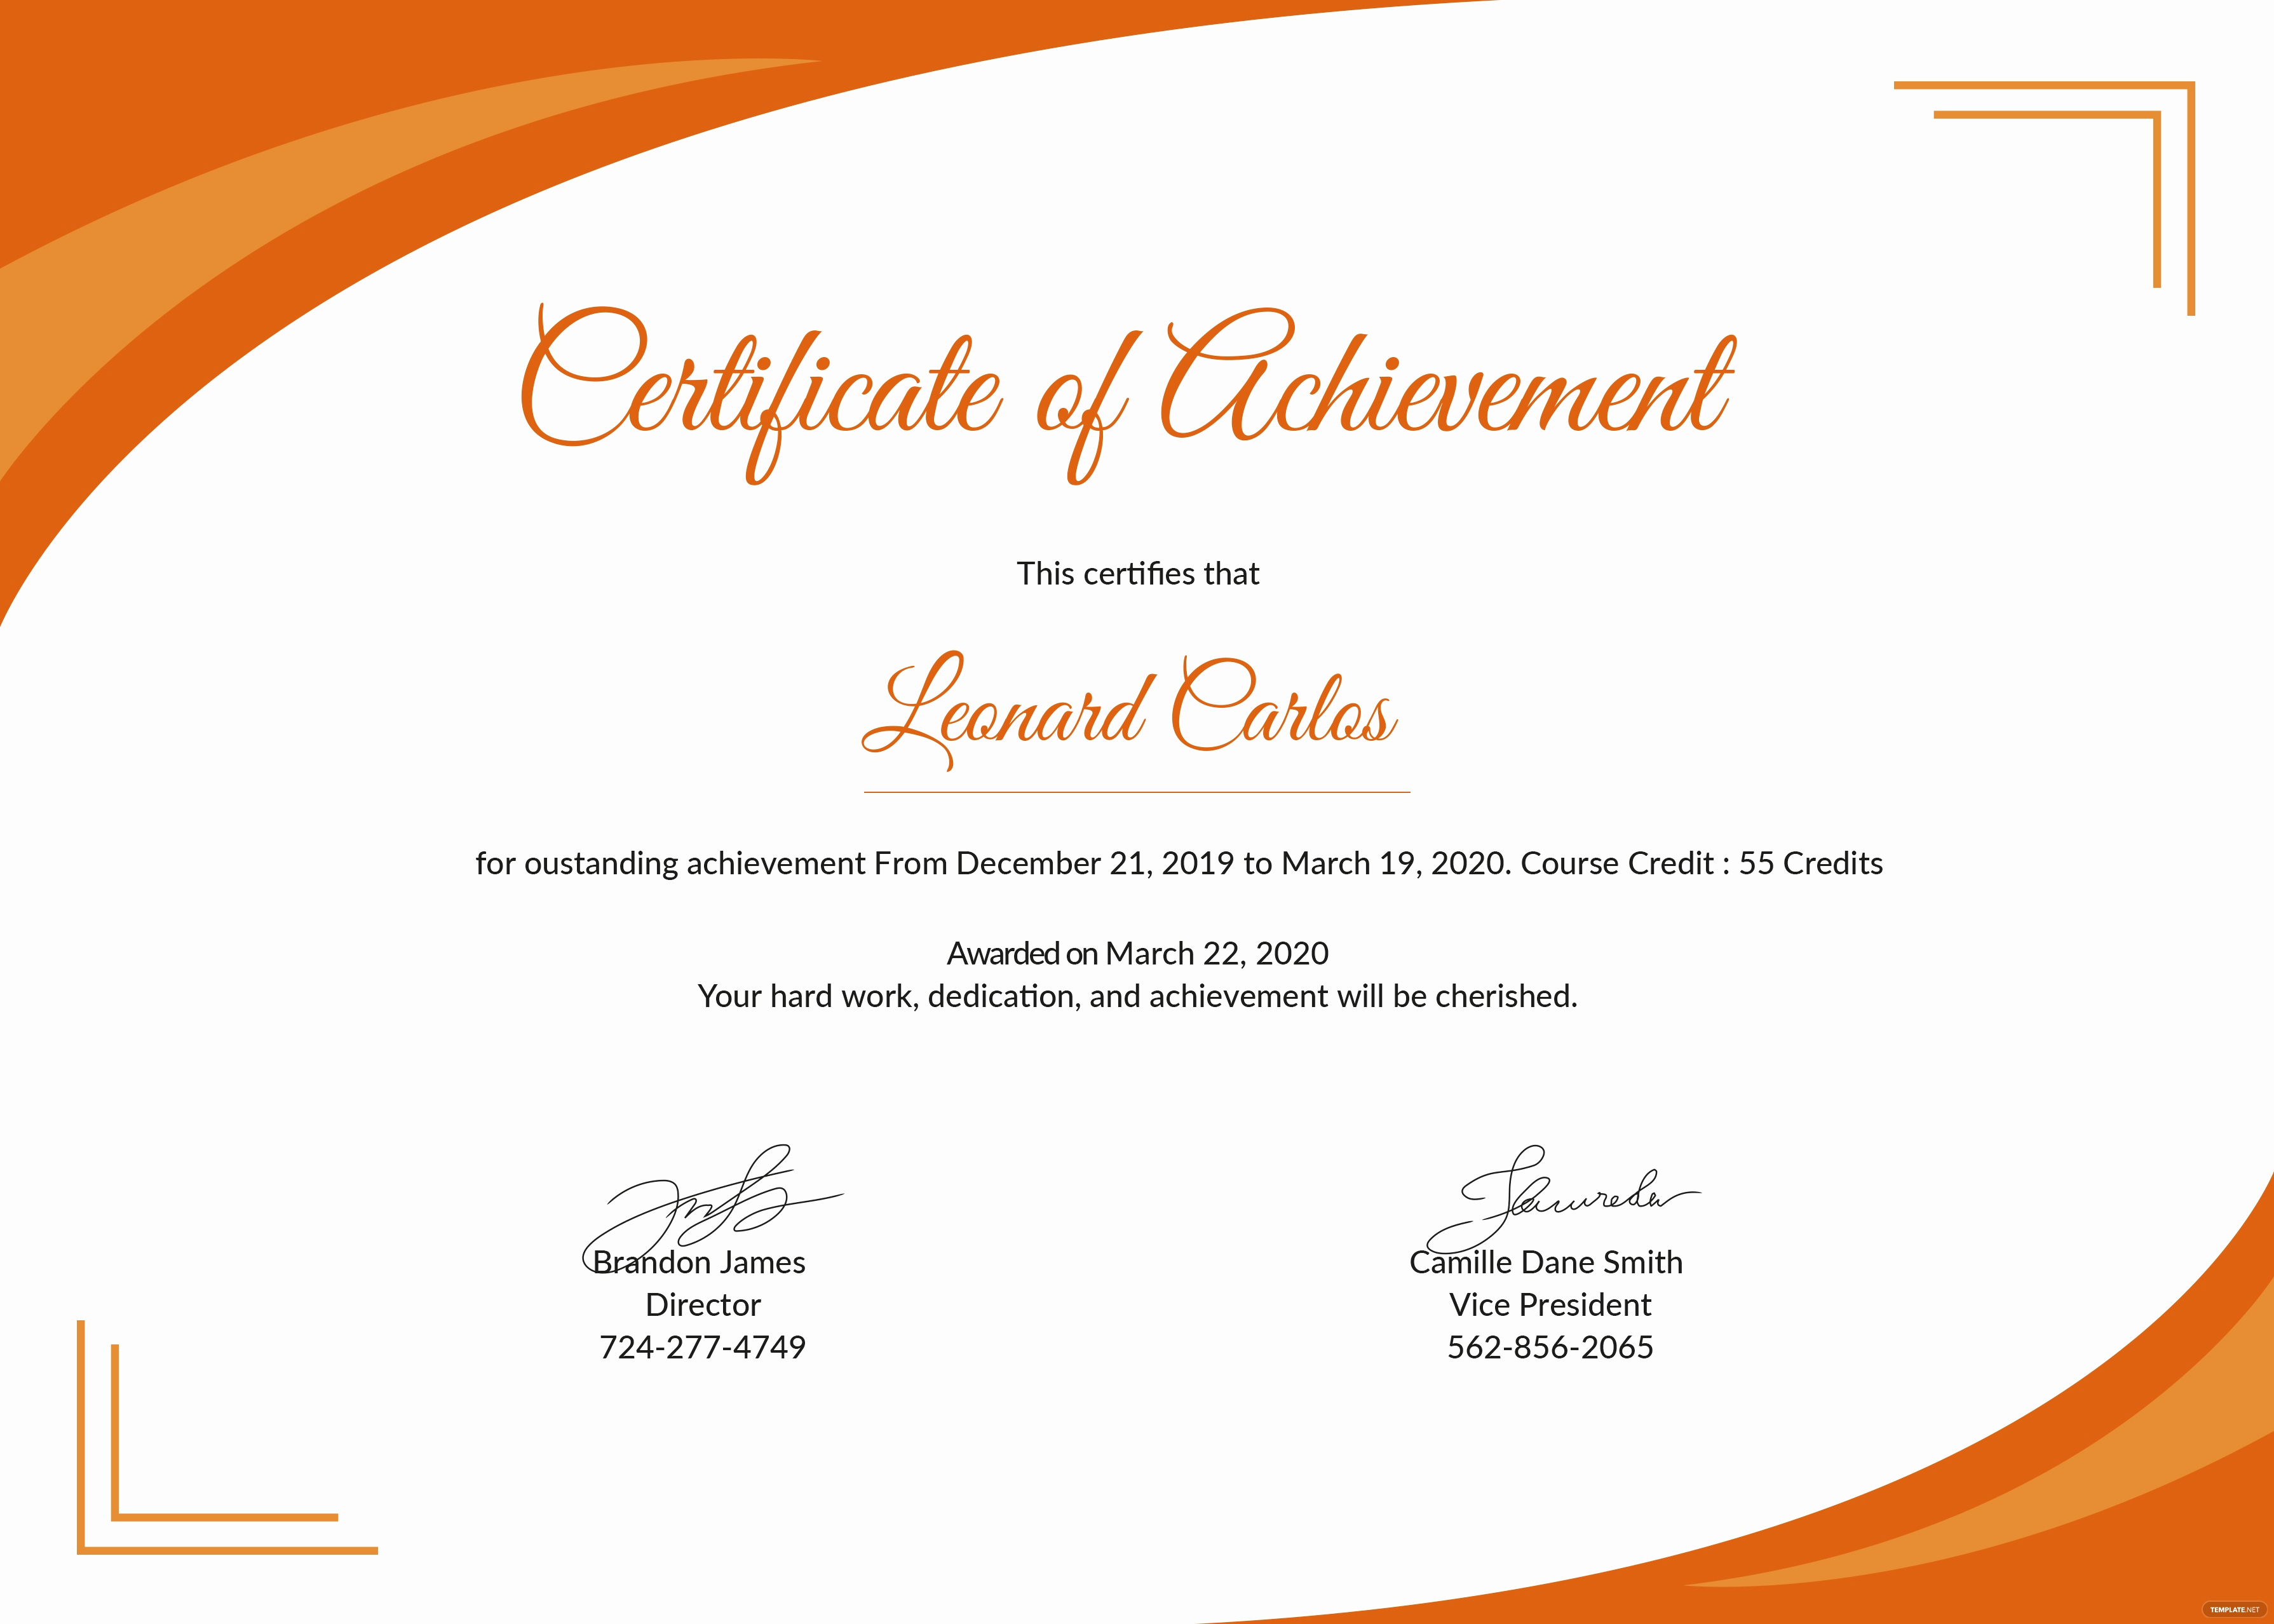 Certificate Templates for Word Awesome Free Certificate Of Achievement Template In Psd Ms Word